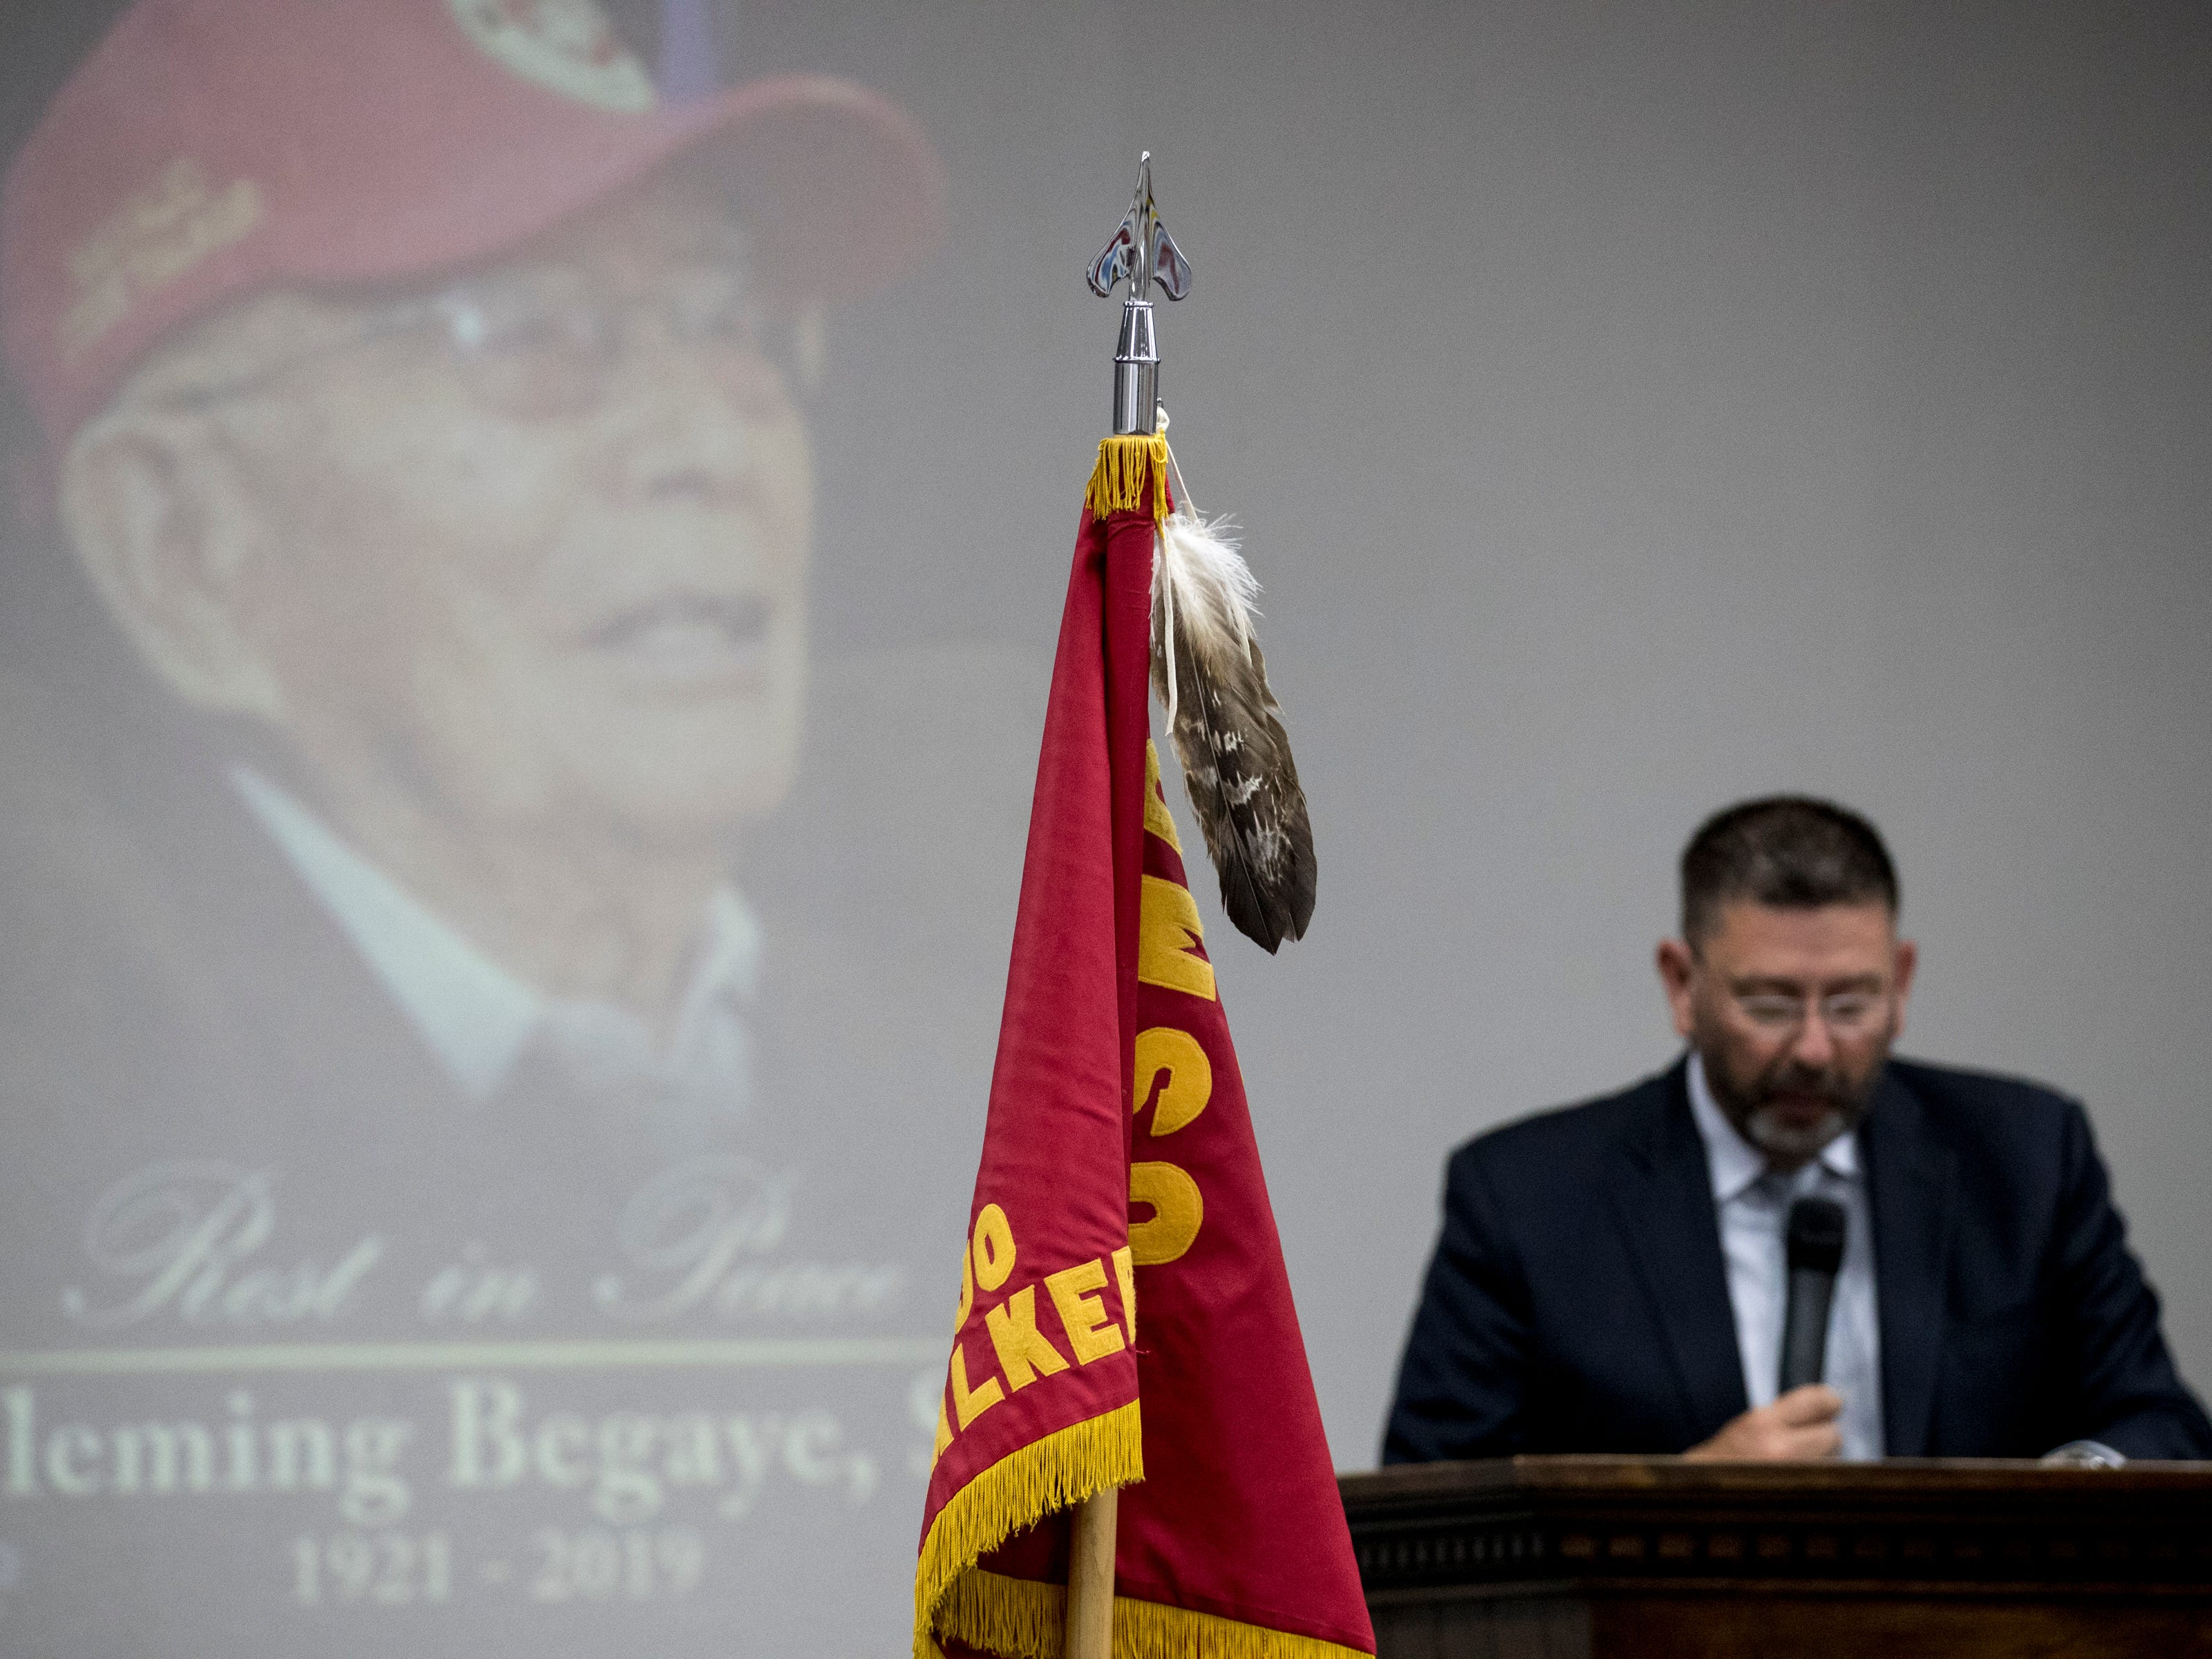 Jim Yates speaks during the funeral service for Navajo Code Talker Fleming Begaye Sr. at the Potter's House Christian Center in Chinle, Ariz., on May 17, 2019.